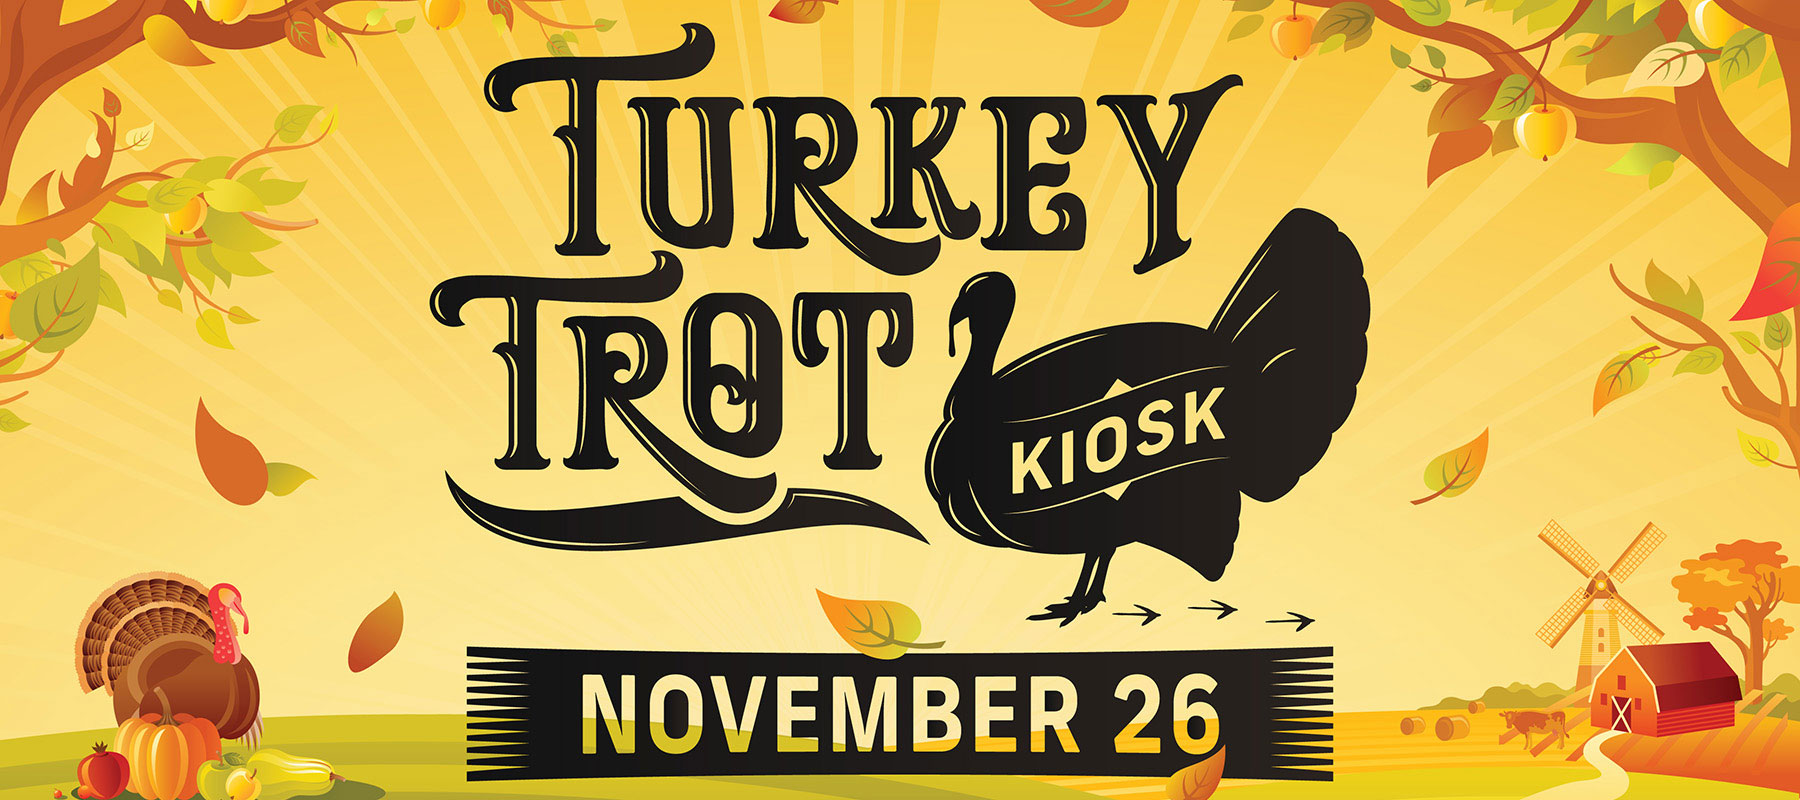 Turkey Trot Kiosk